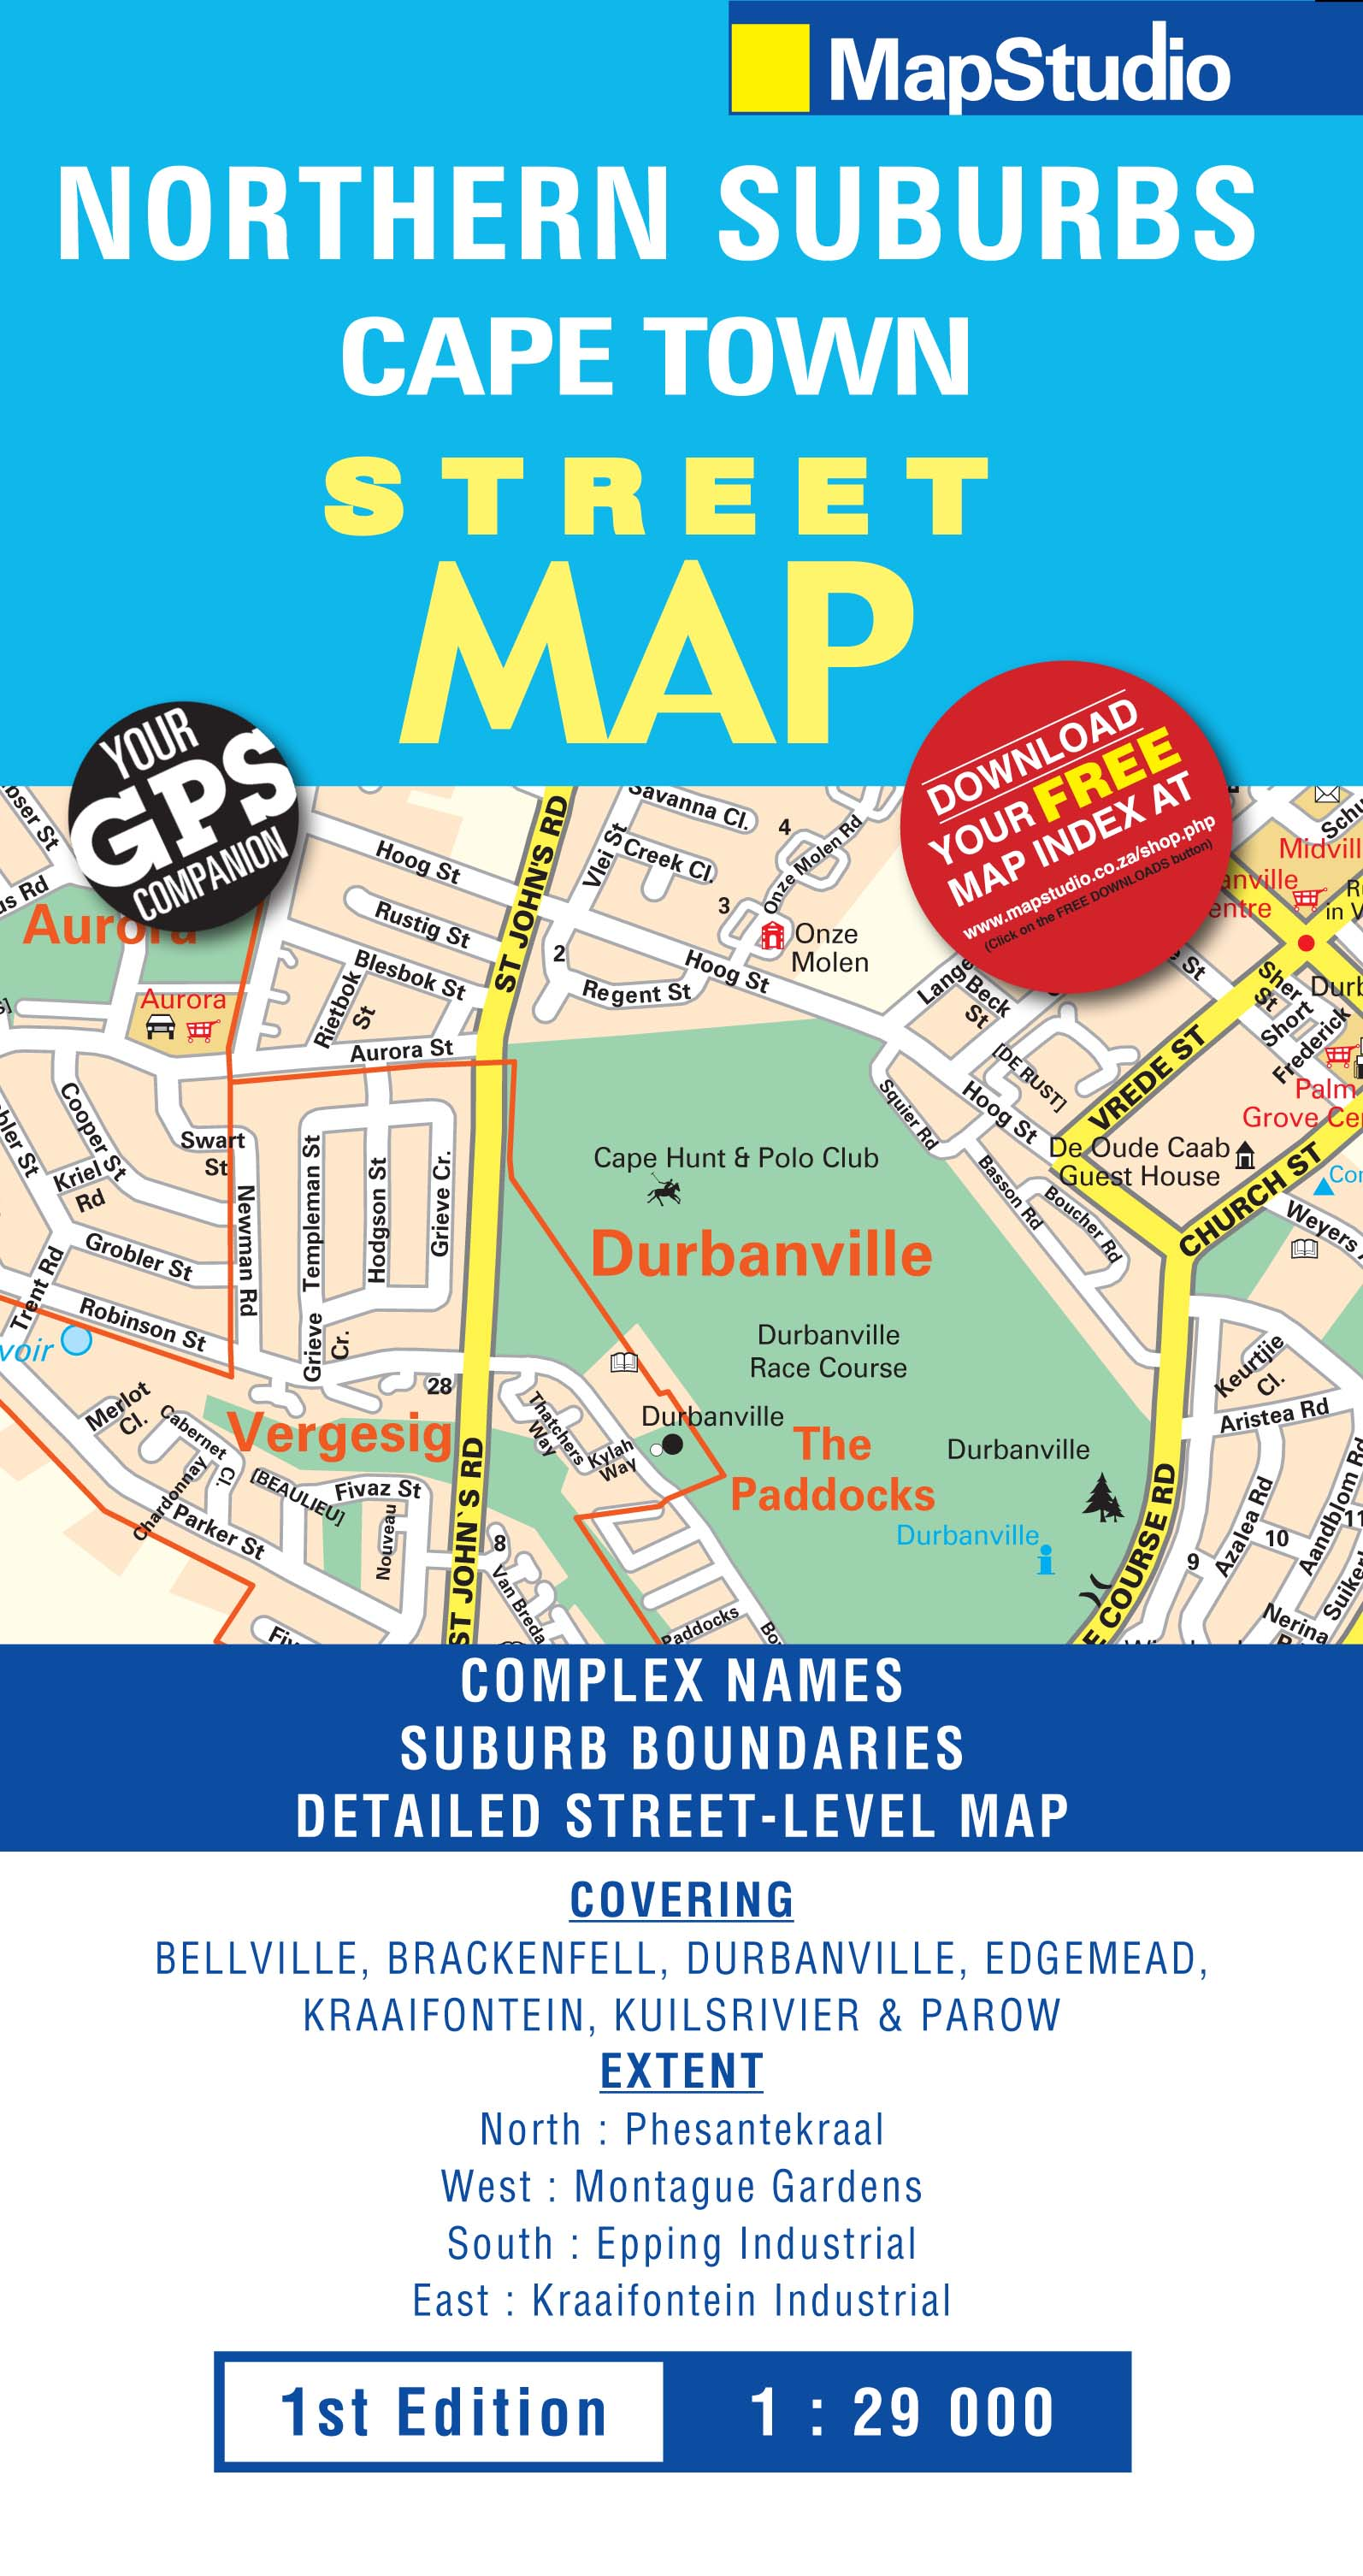 Northern Suburbs Cape Town Street Map